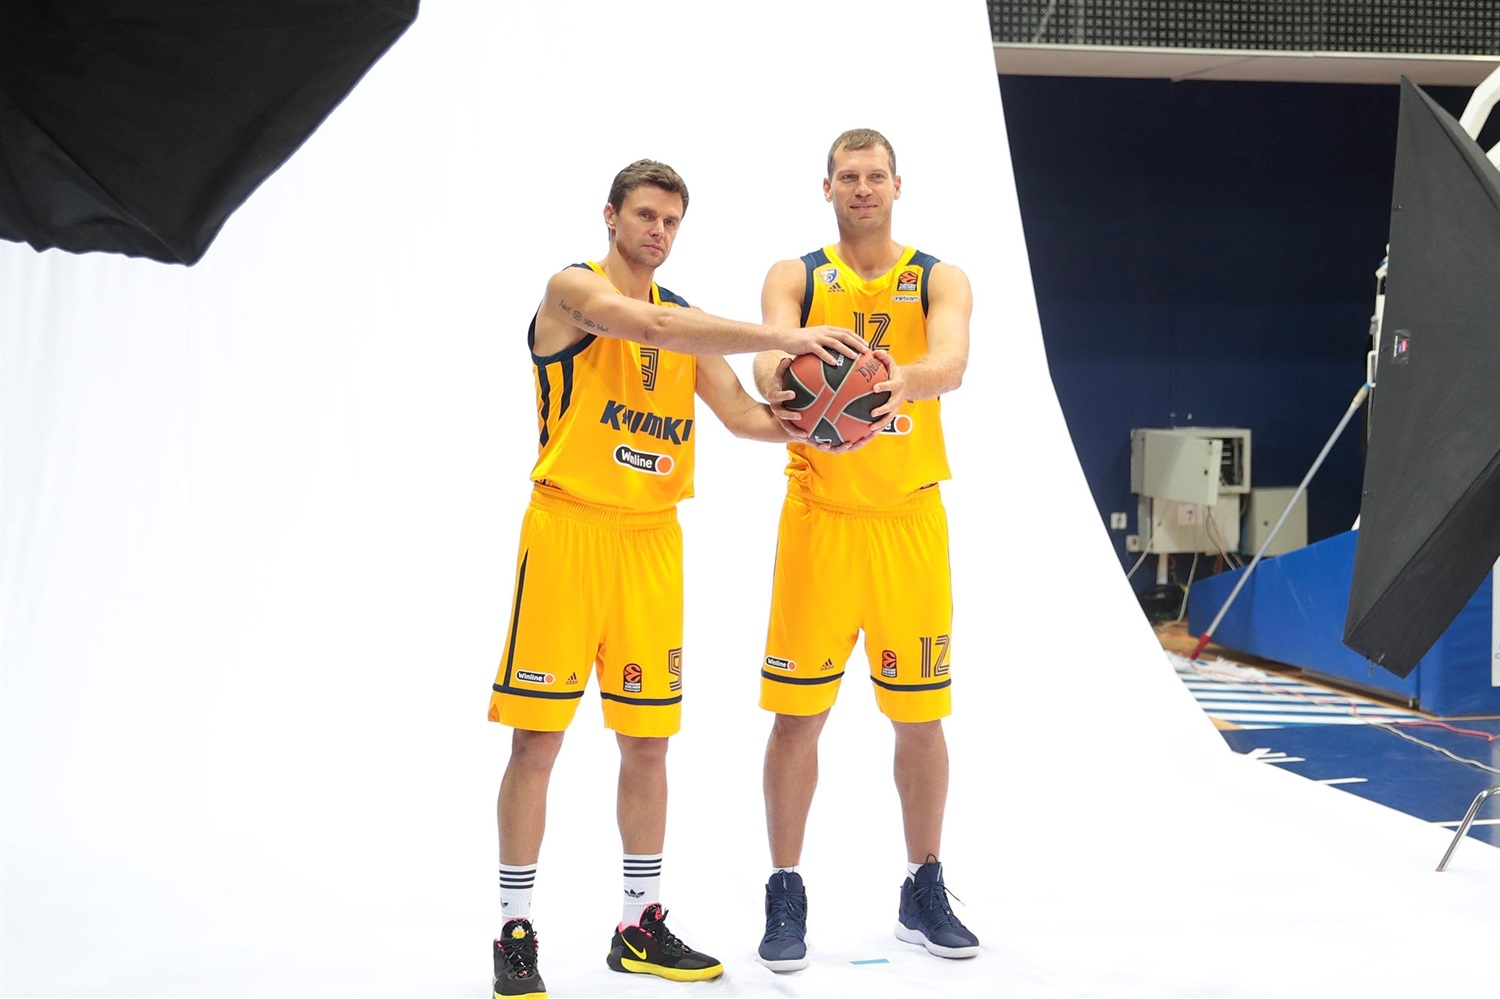 Egor Vialtsev and Sergey Monia - Khimki Moscow Region Media day 2020 - EB20